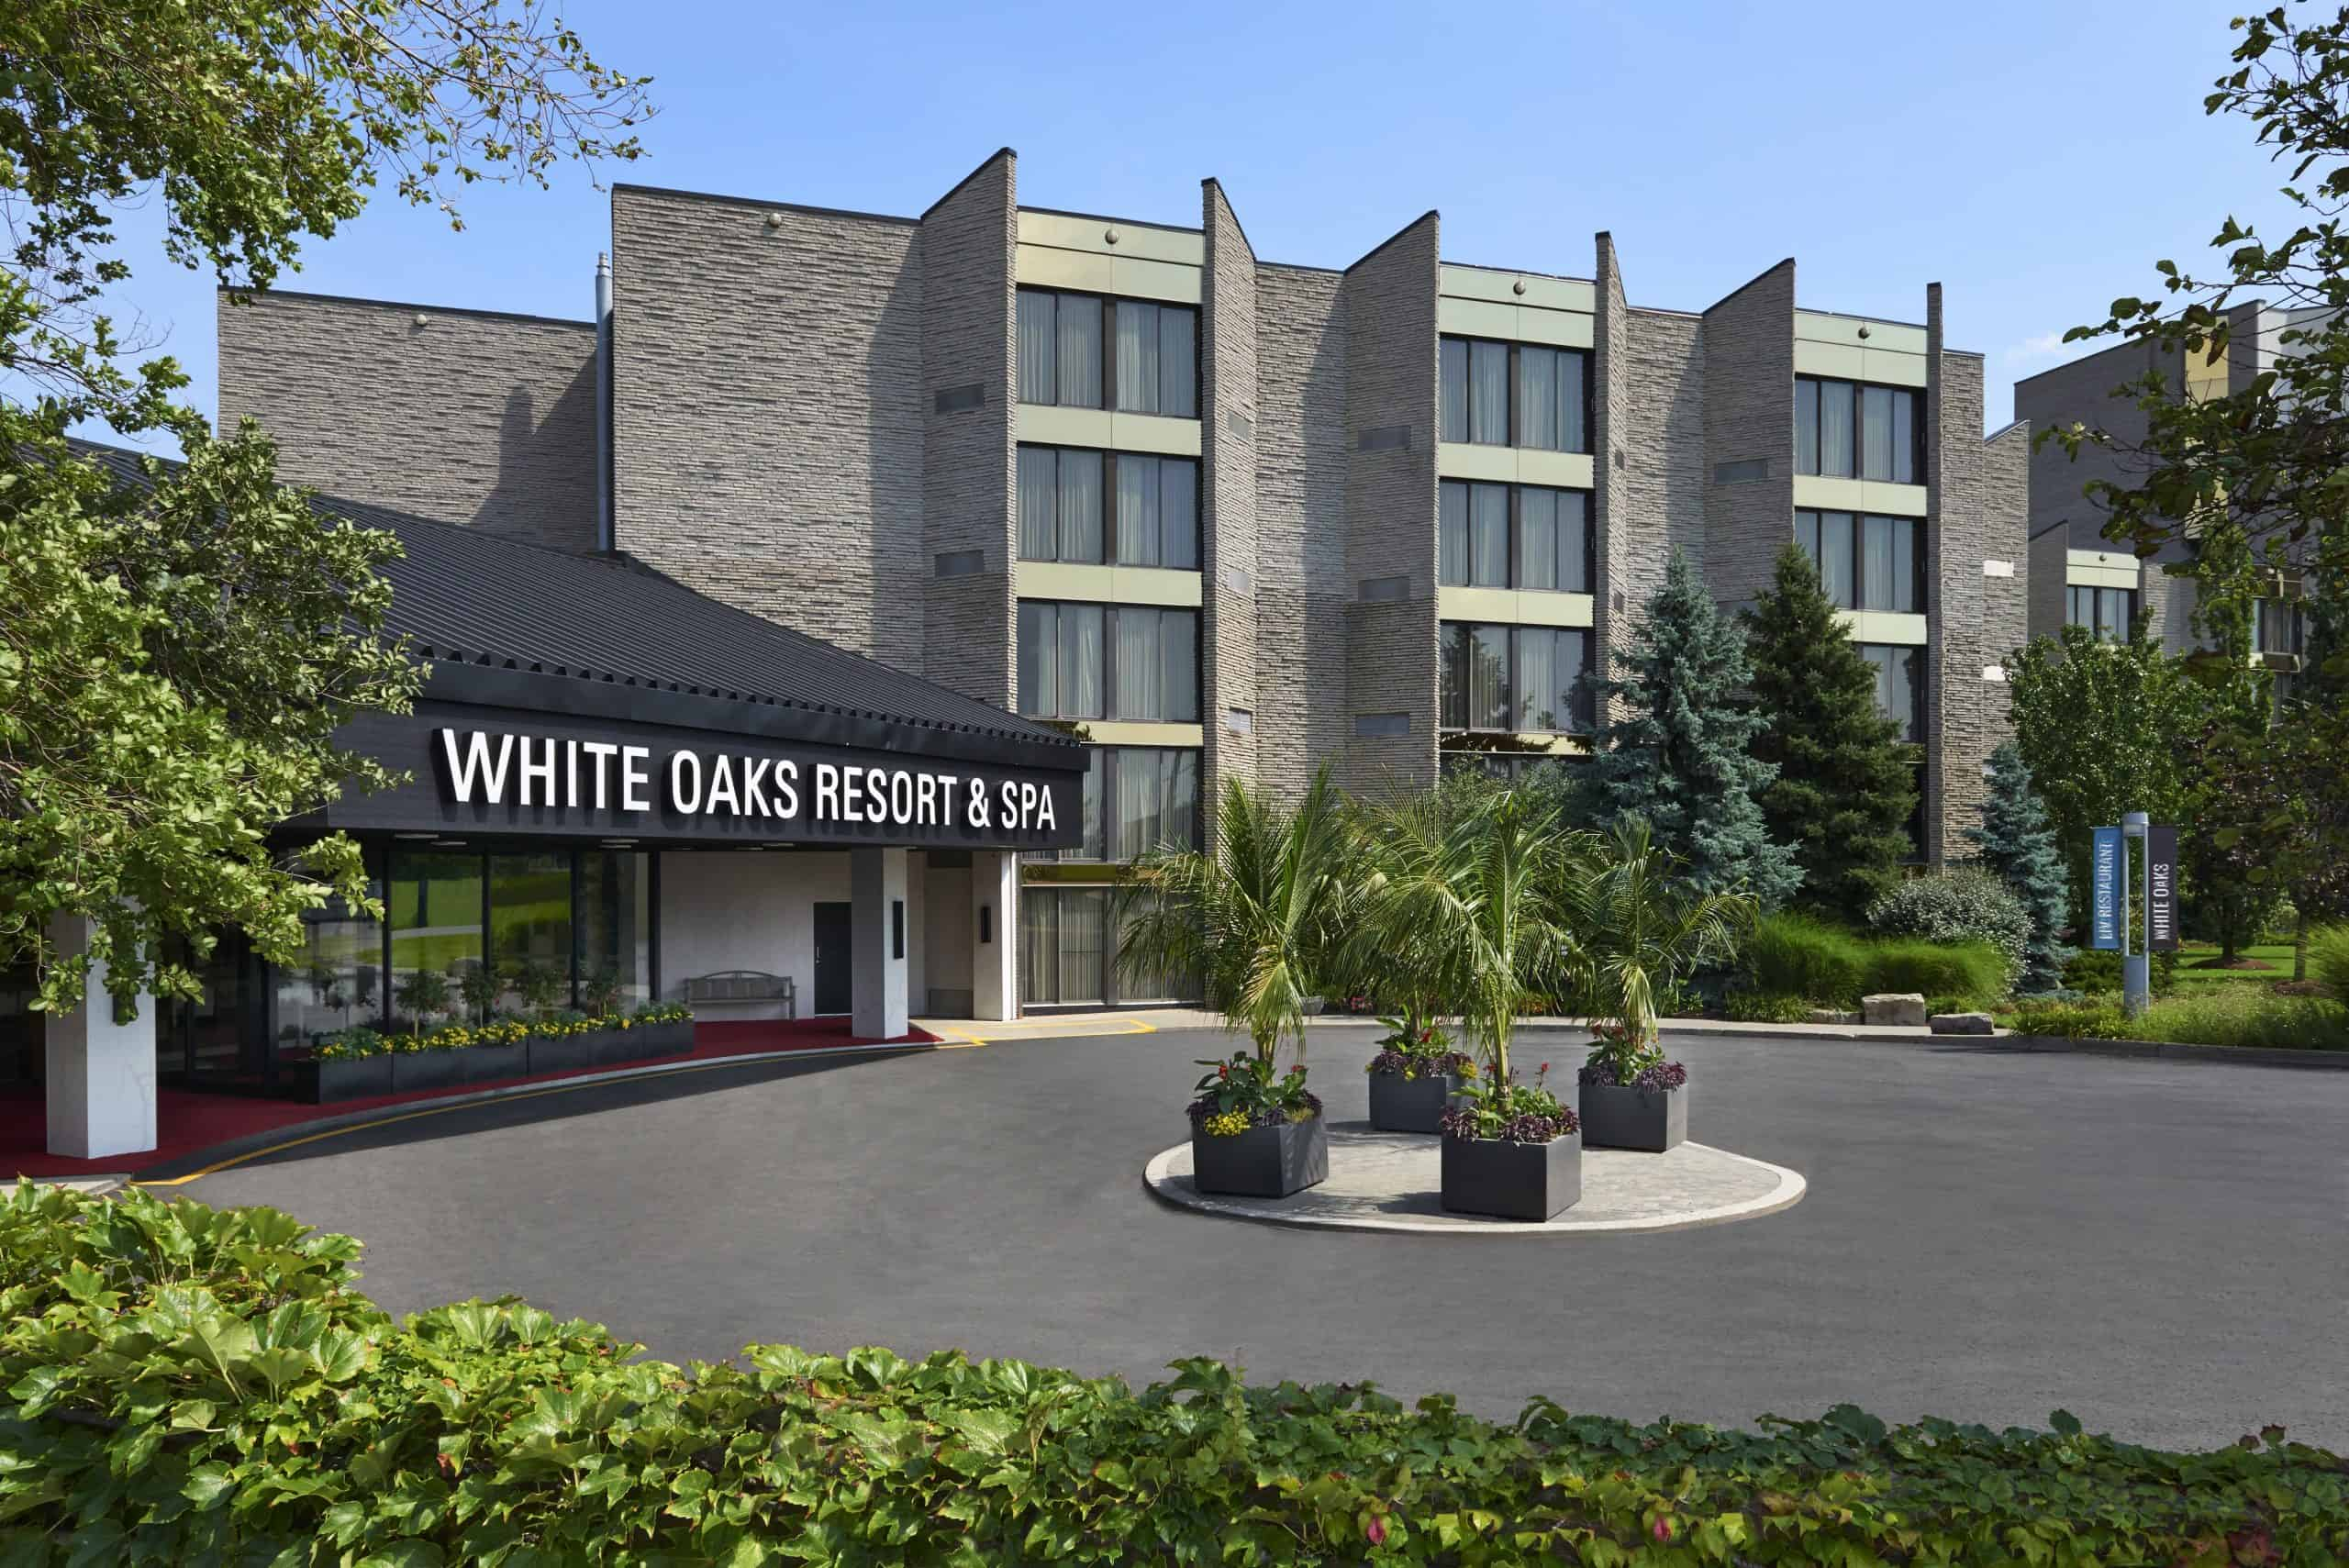 White Oaks Conference Resort and Spa.